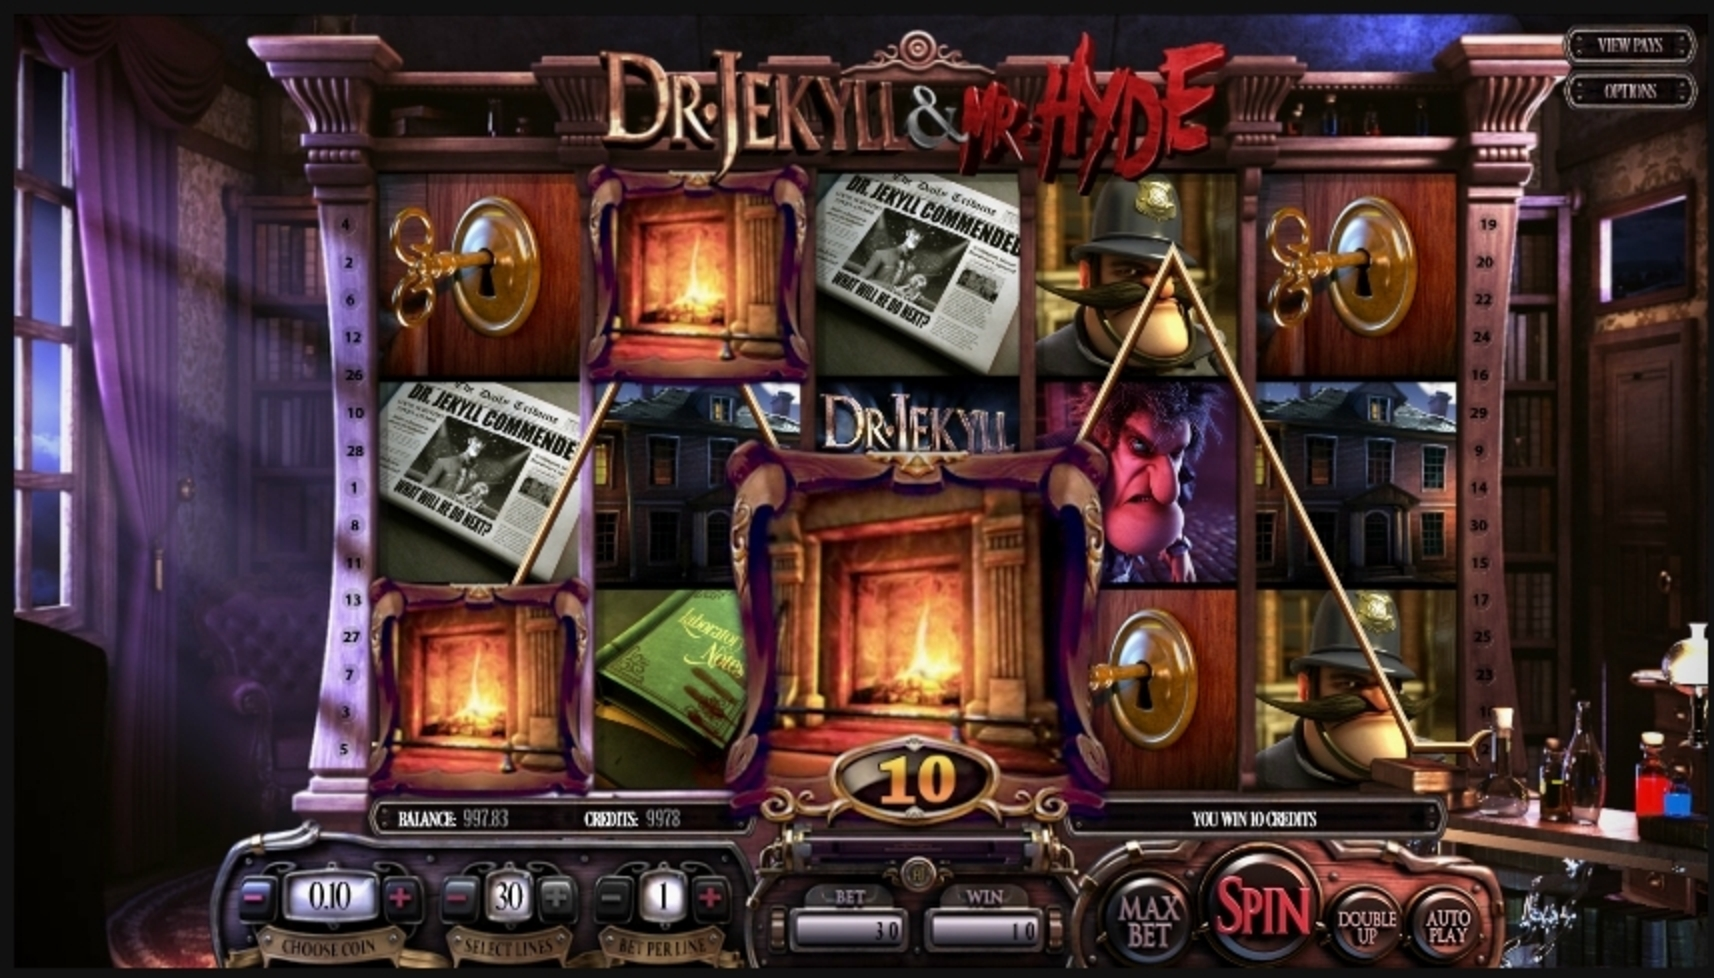 Win Money in Dr. Jekyll & Mr. Hyde Free Slot Game by Betsoft